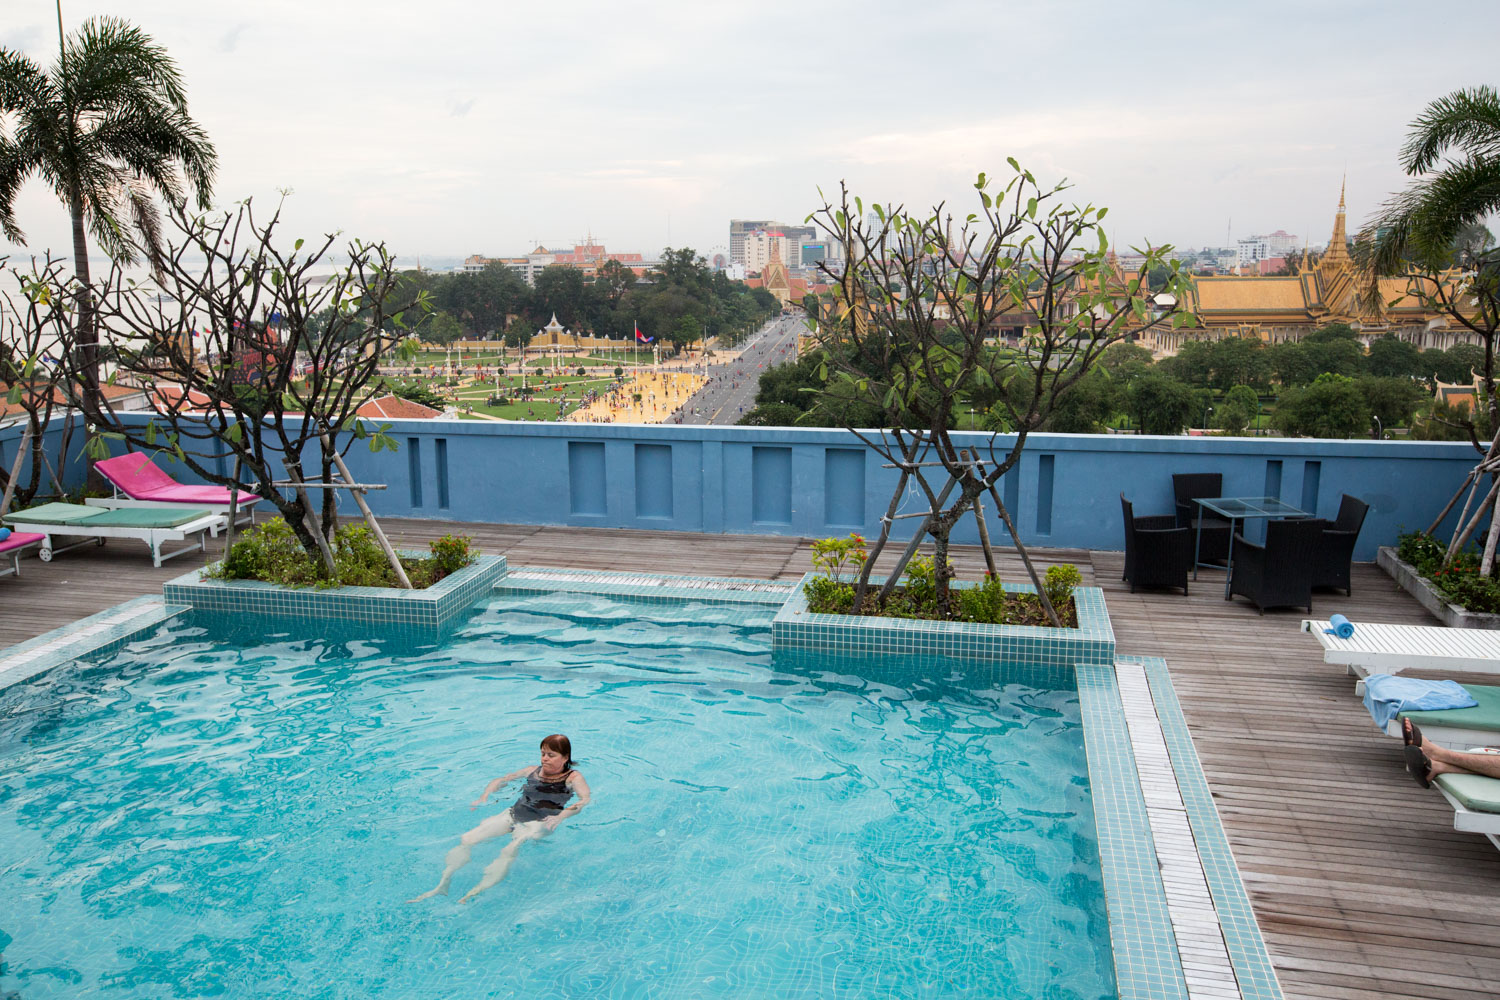 A patron at the Frangipani Royal Palace Hotel in Phnom Pehn, Cambodia, relaxes in a rooftop swimming pool.